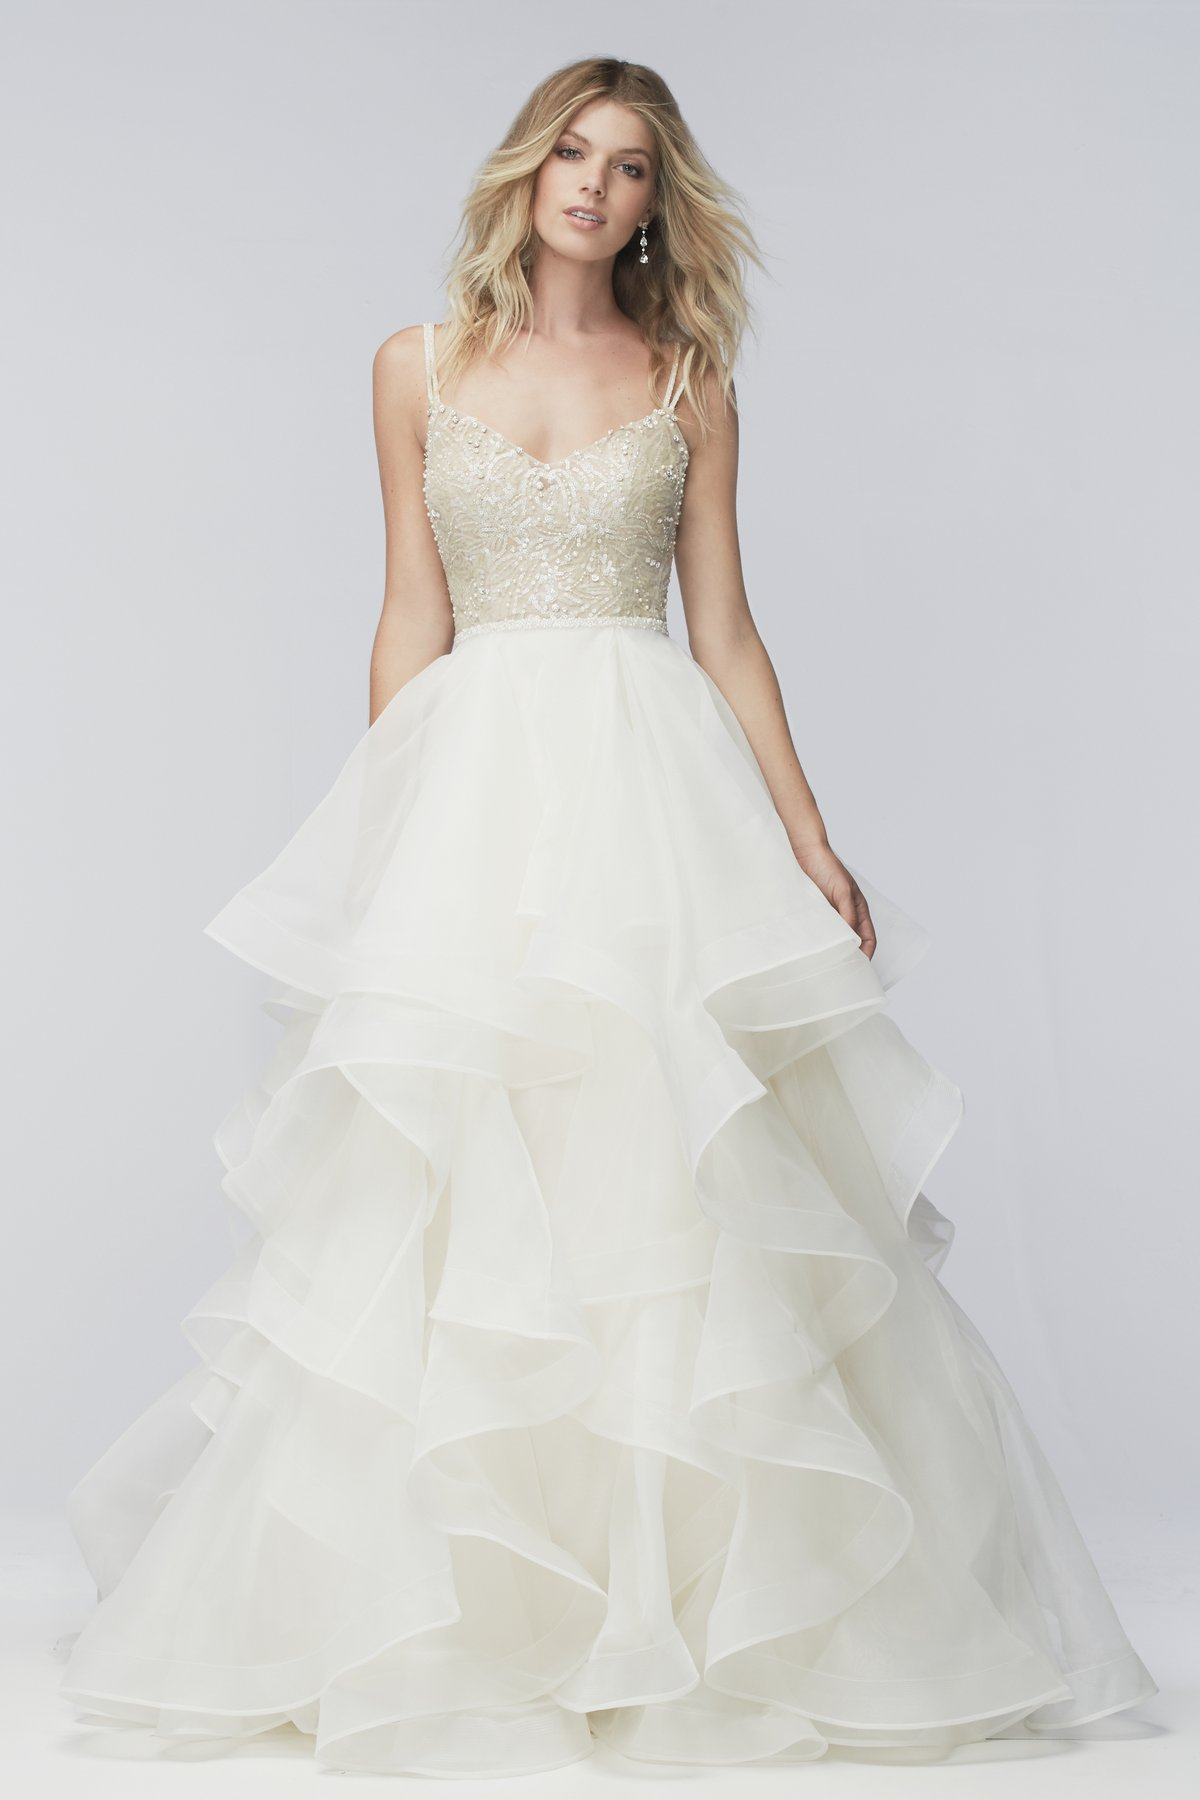 Lori G Wedding Dresses : Kennedy by wtoo wedding dress from lori g bridal derby